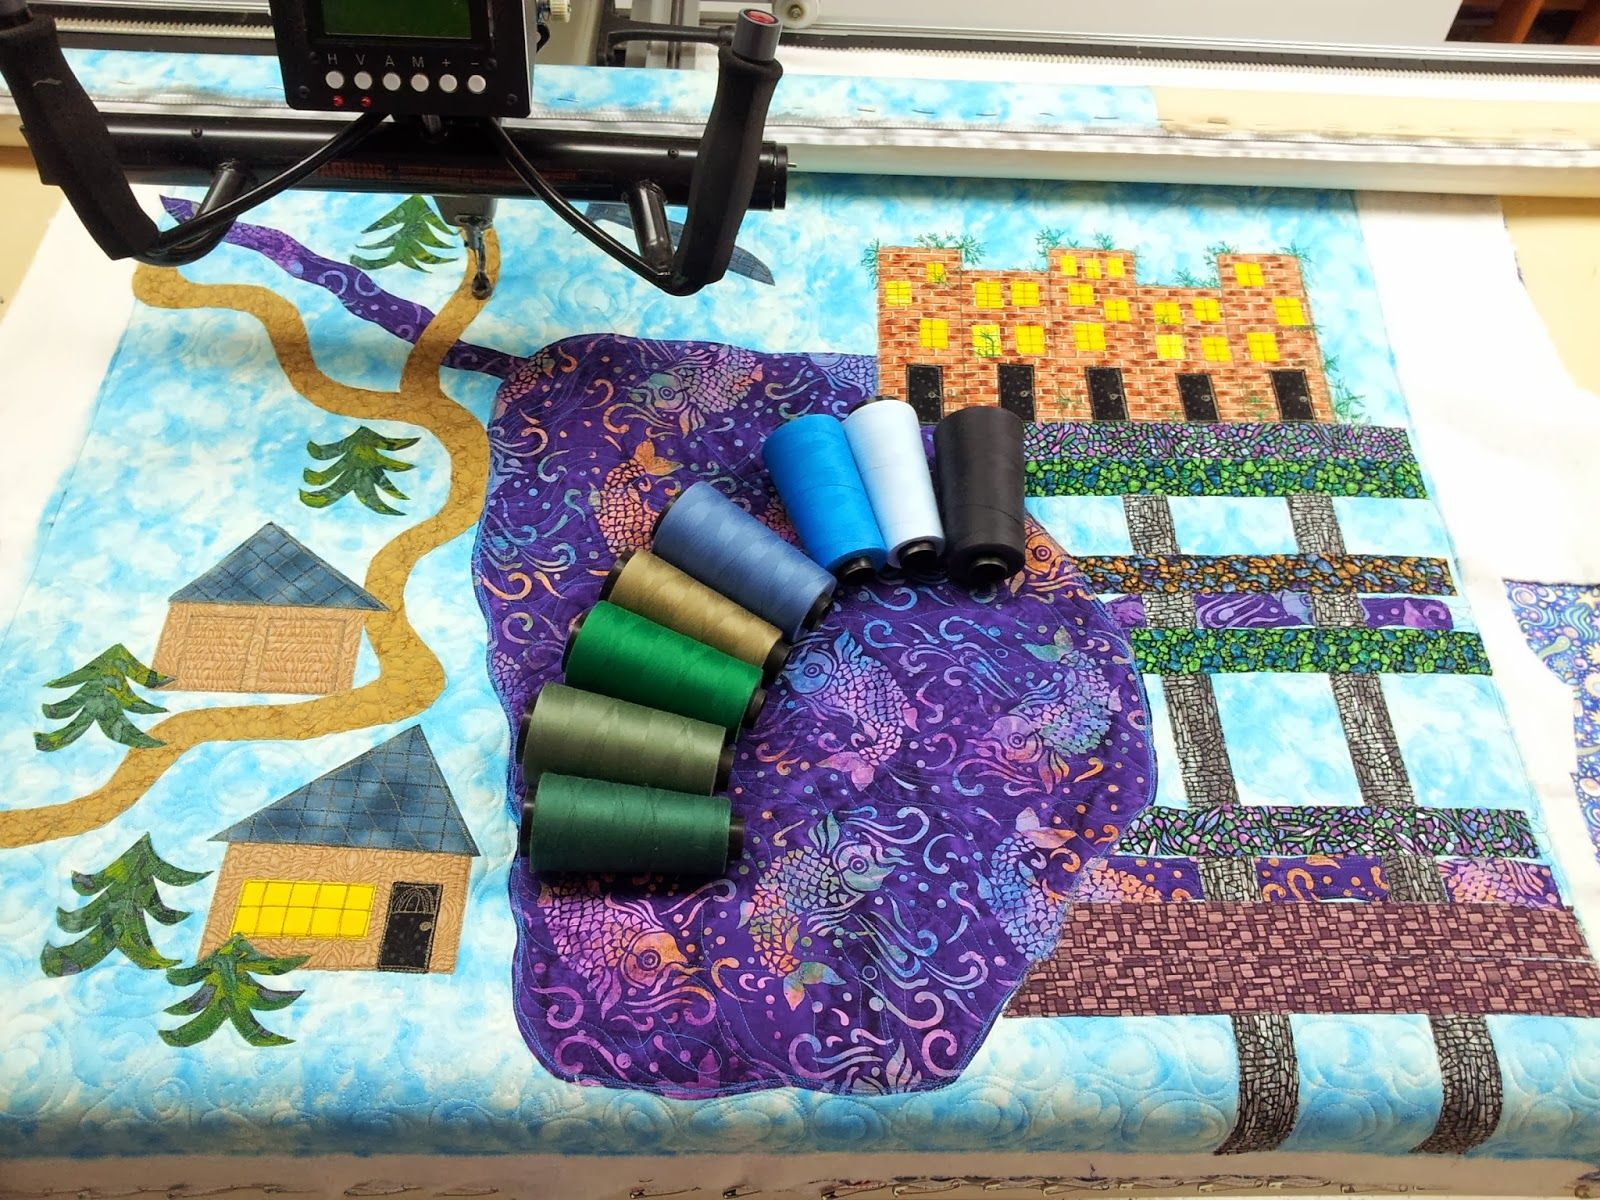 Crafty Sewing & Quilting: Across the Pond to Grandmama's House - An Imaginar...